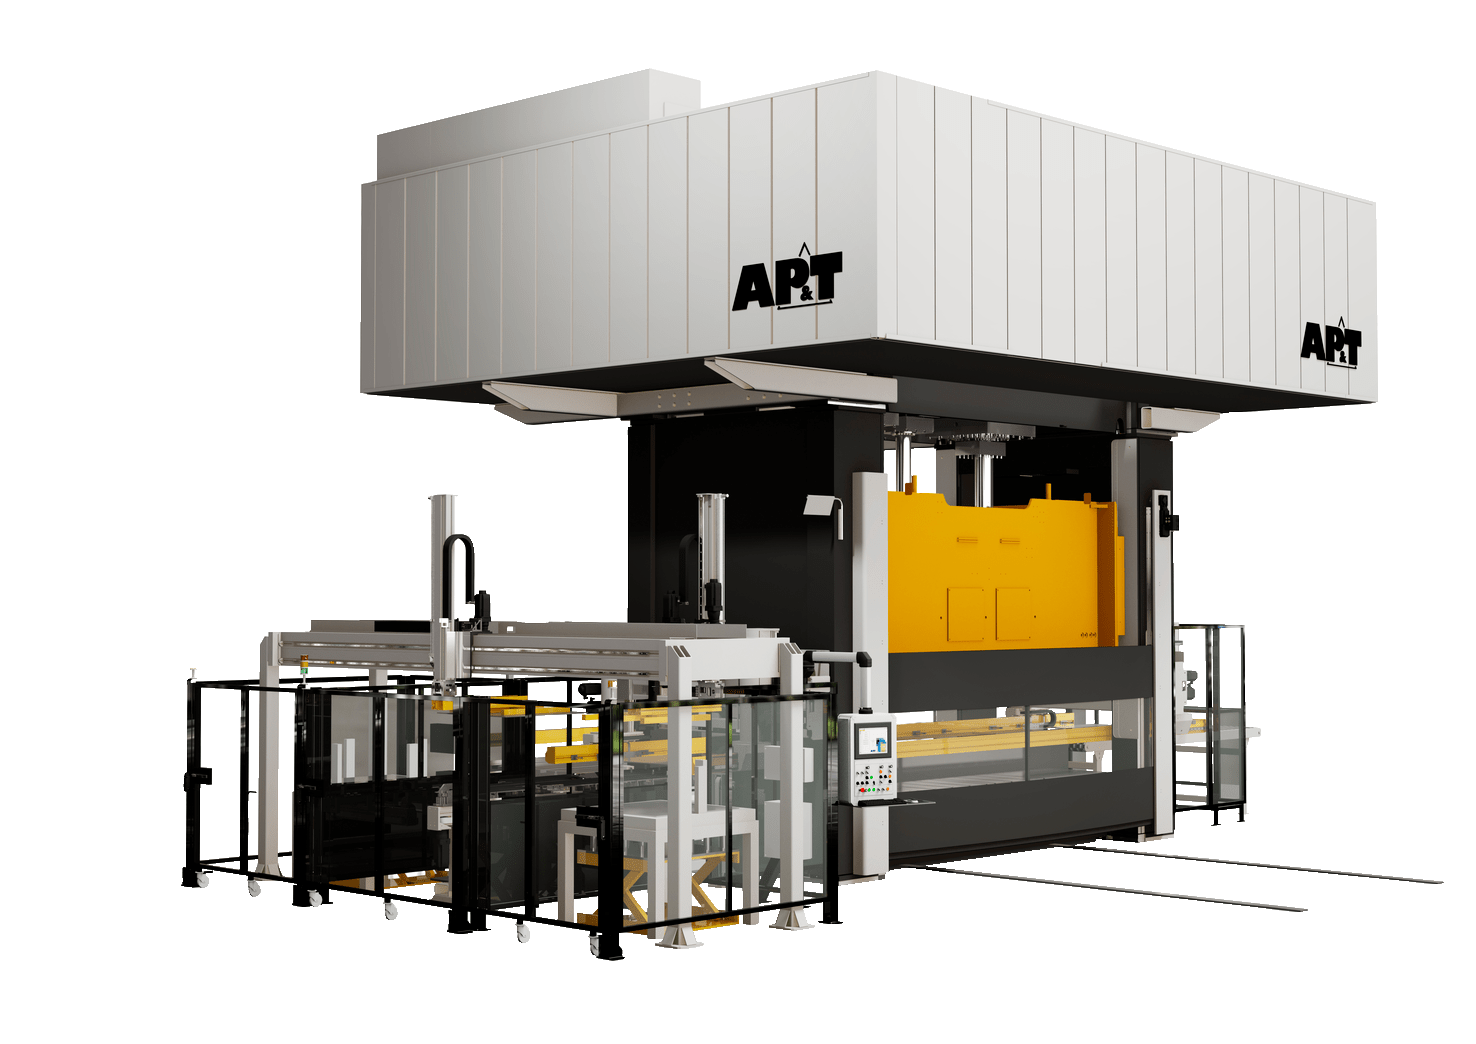 With high stroke frequency, full synchronization and compensation for off-center loads, AP&T's servo hydraulic press is well suited to transfer solutions.